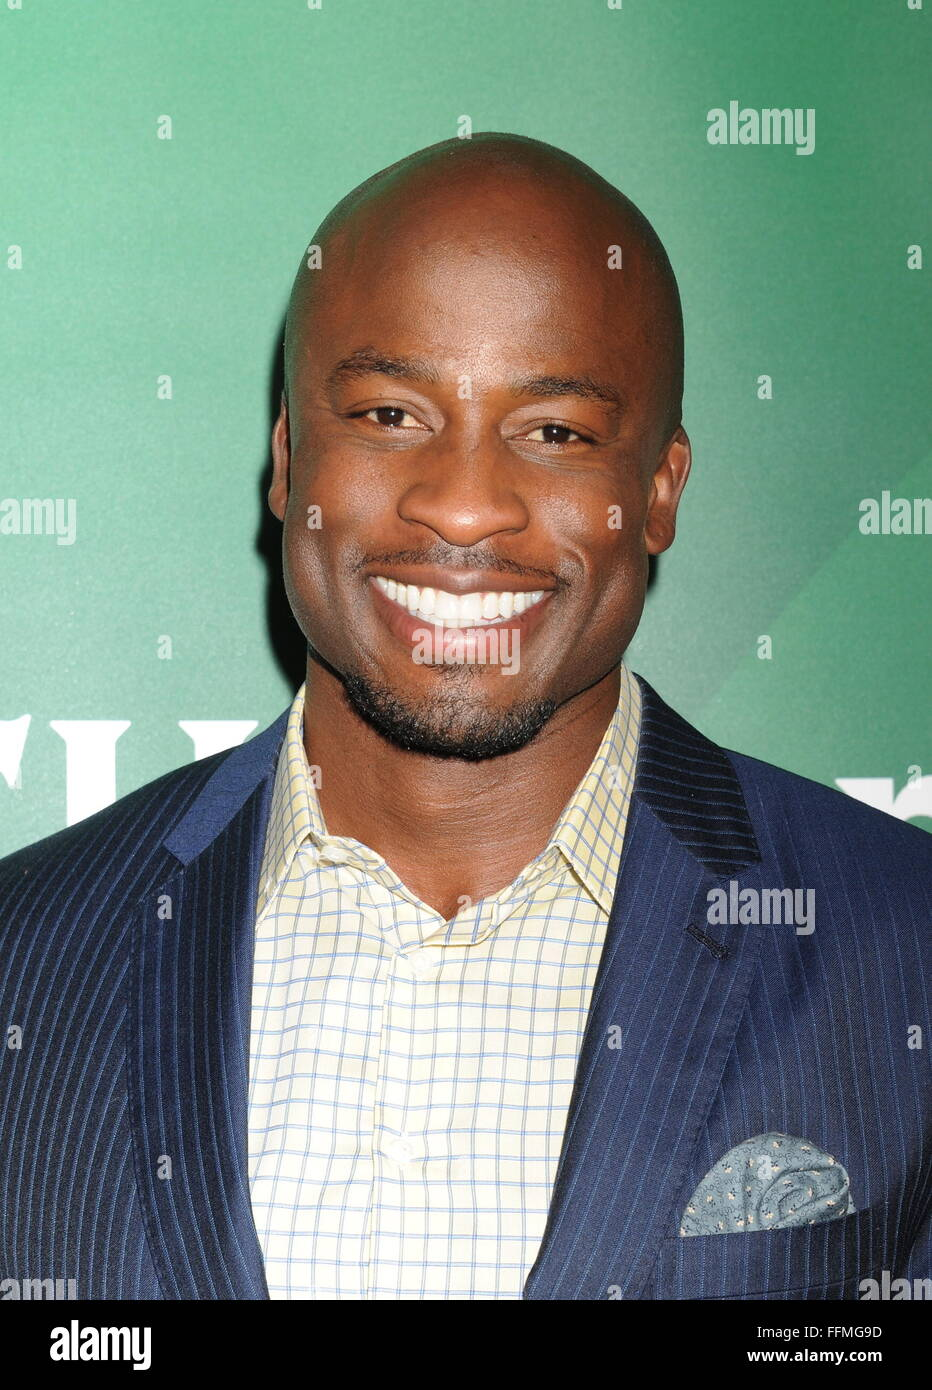 Actor Akbar Gbajabiamila attends the 2015 NBCUniversal Summer Press Day held at the The Langham Huntington Hotel - Stock Image